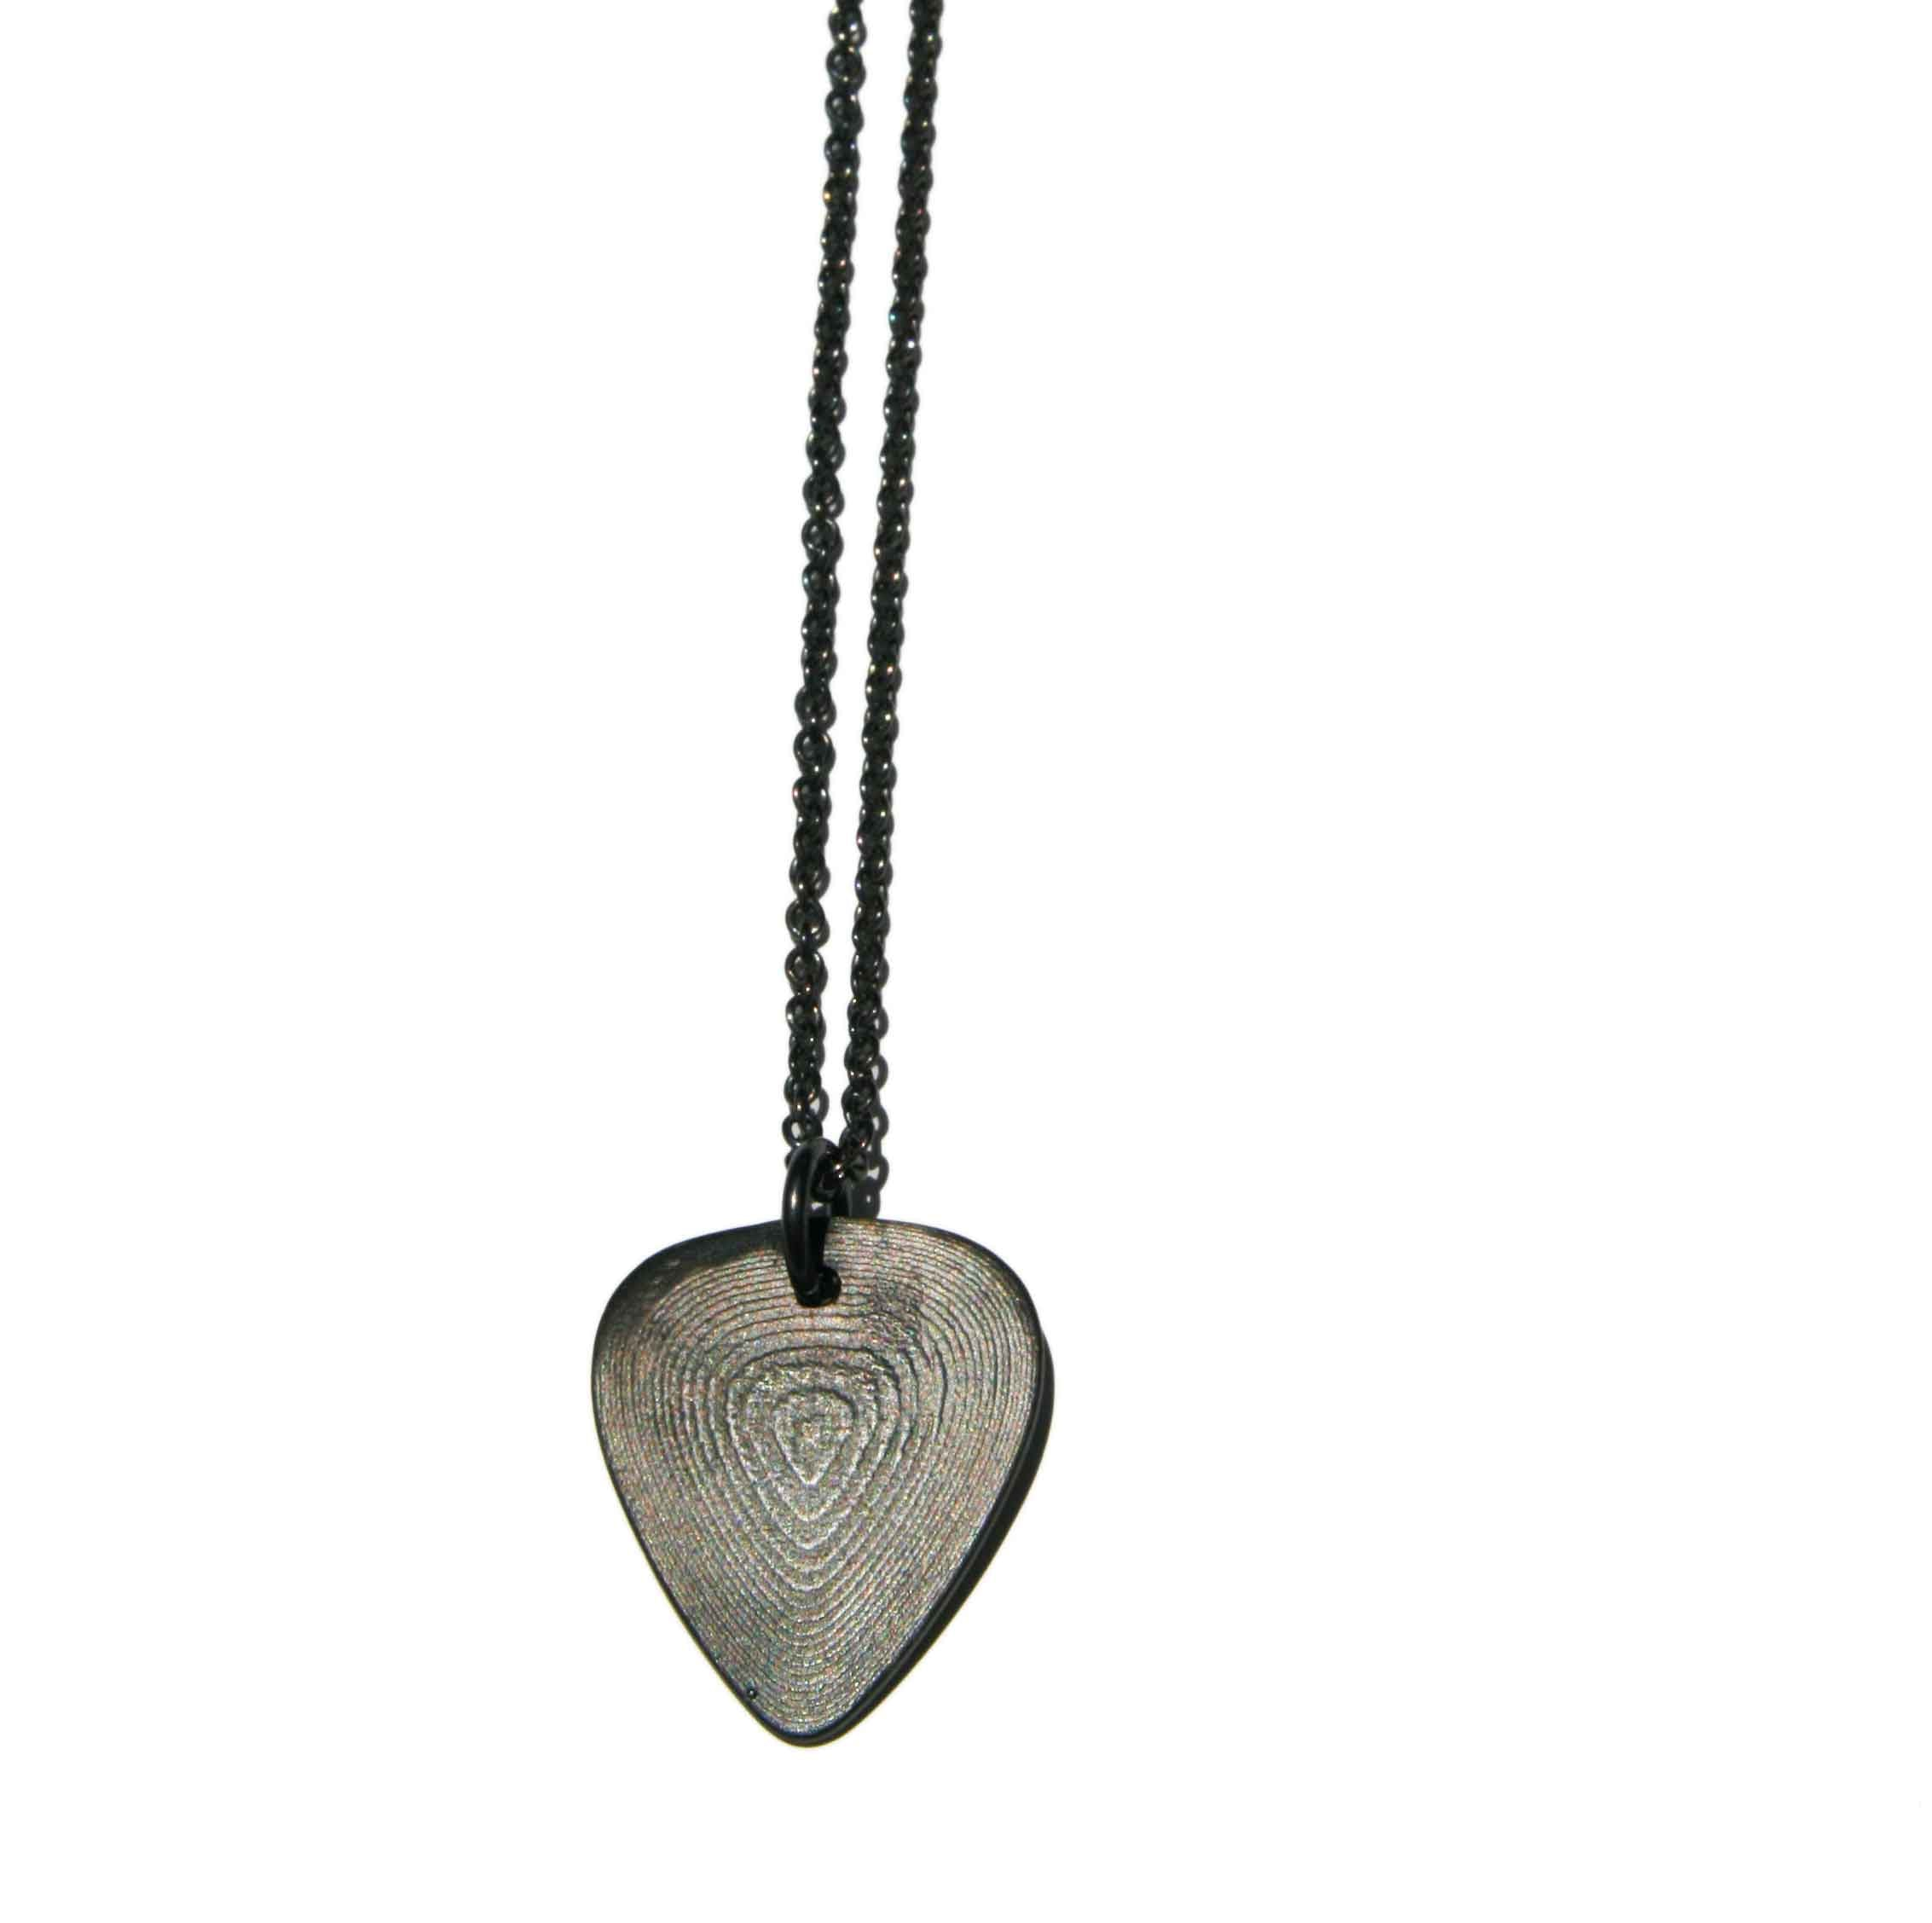 Oxidised silver Plectrum necklace